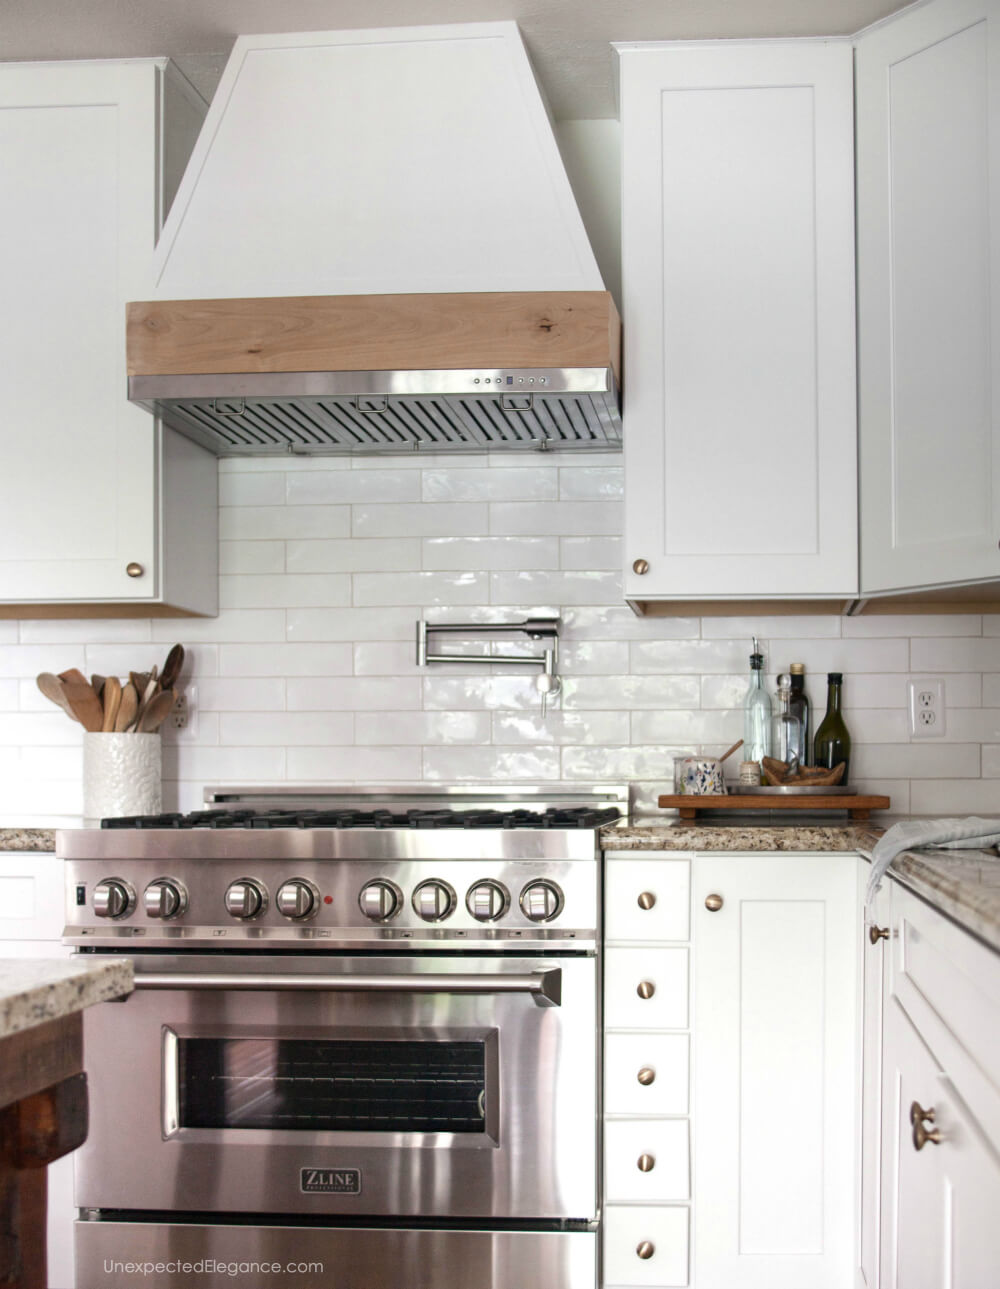 Diy Custom Ductless Range Hood Unexpected Elegance